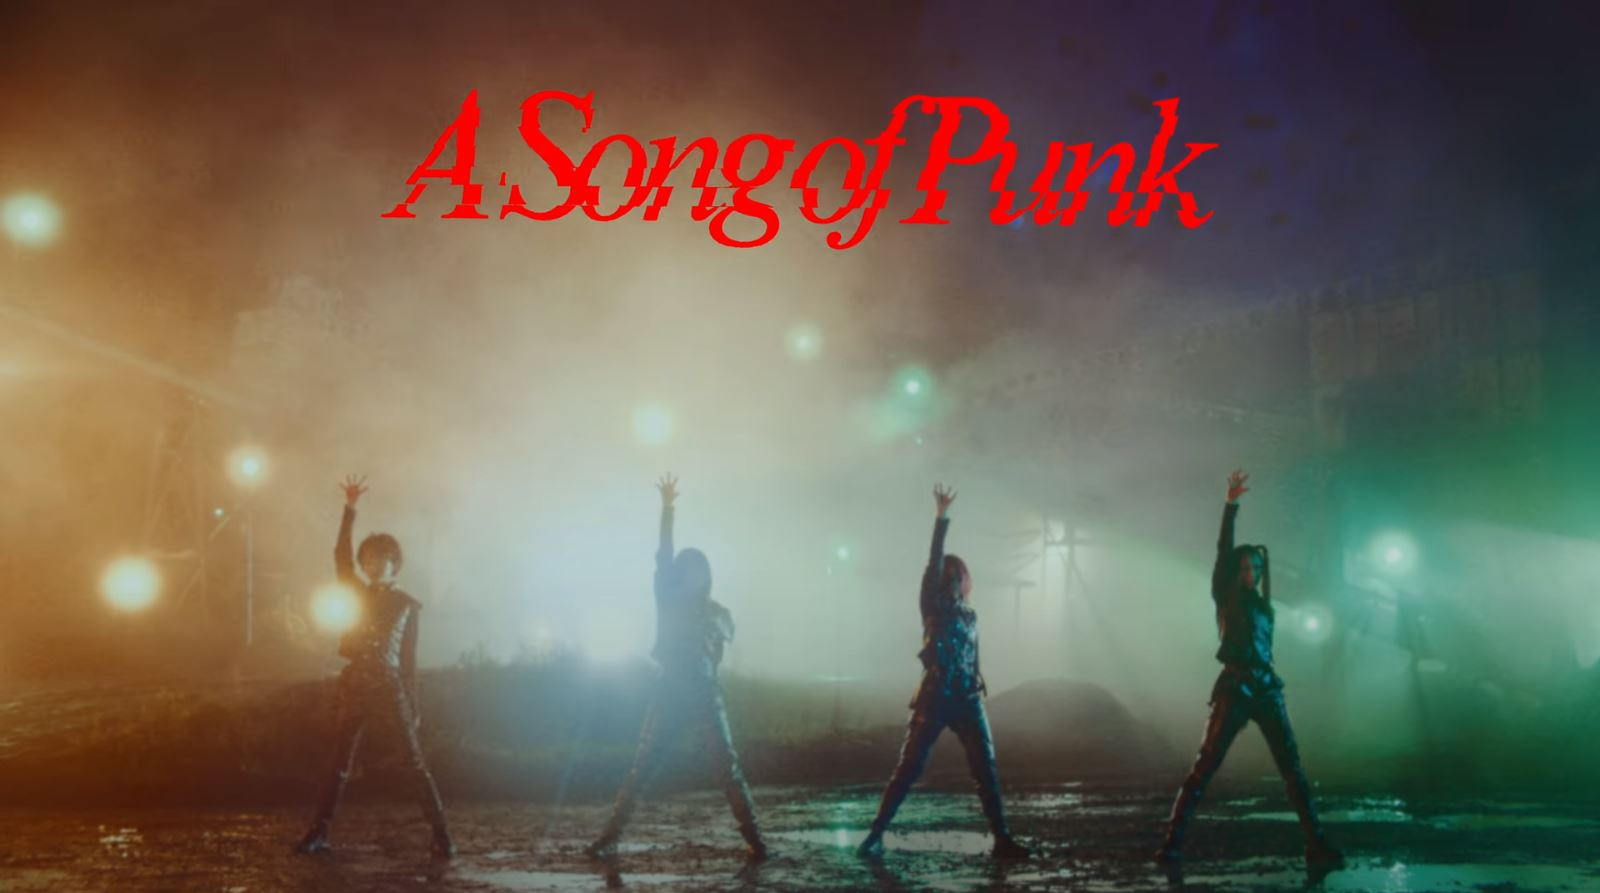 A Song of Punk